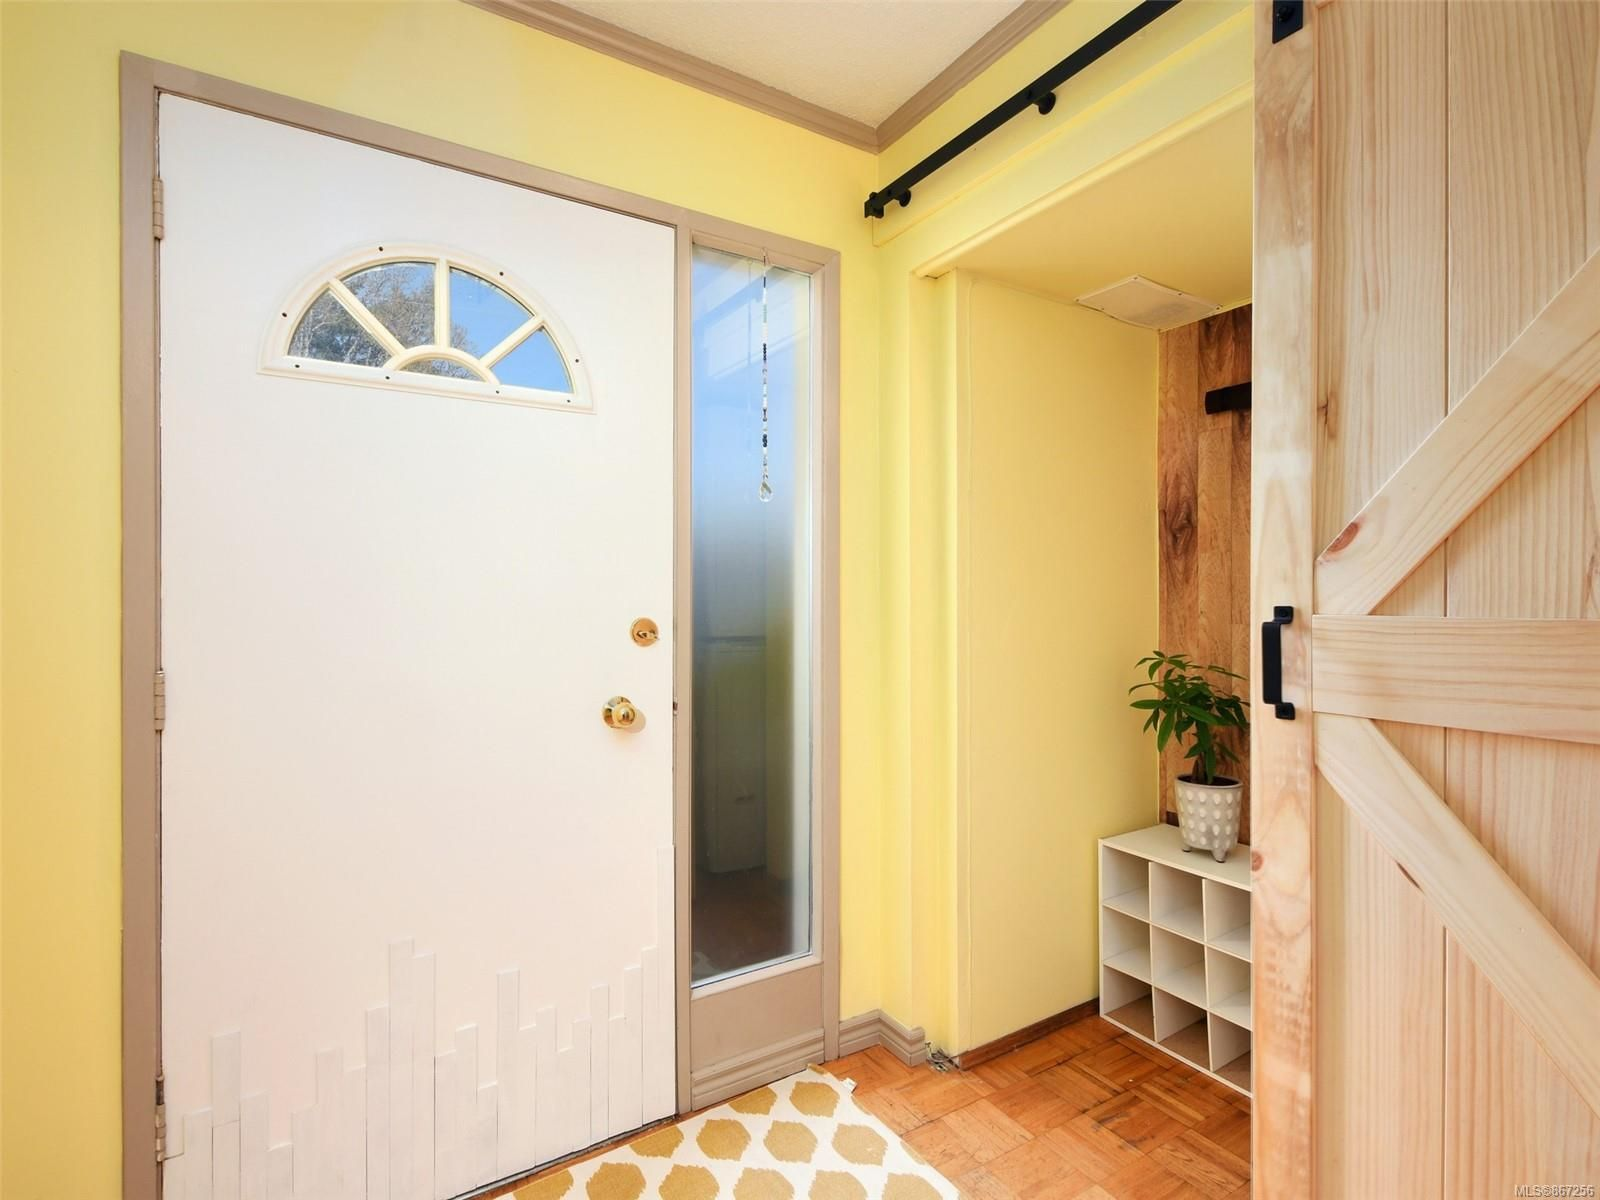 Photo 19: Photos: 5 869 Swan St in : SE Swan Lake Row/Townhouse for sale (Saanich East)  : MLS®# 867256